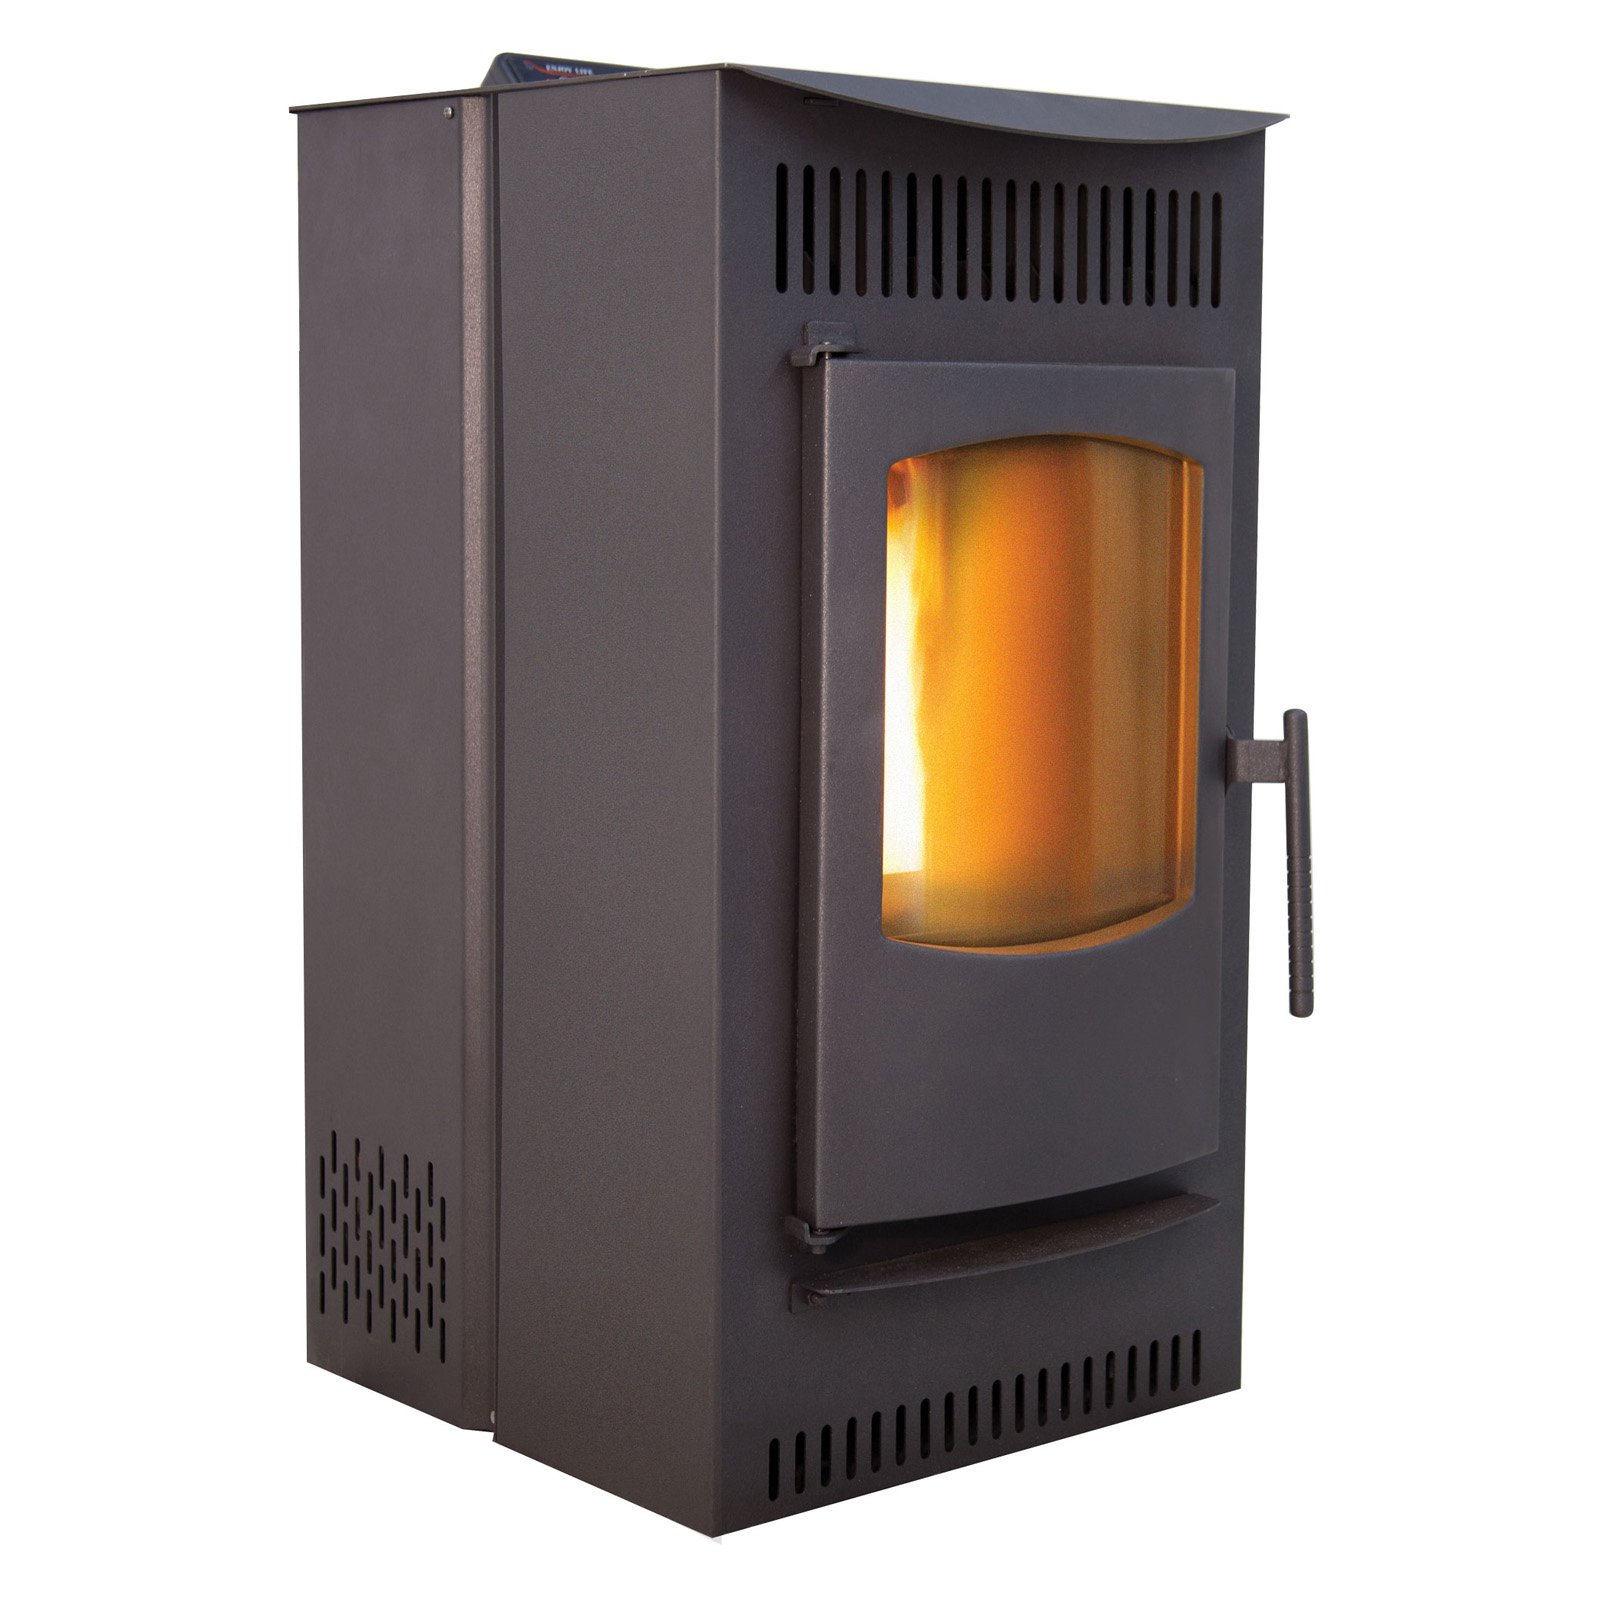 Castle Serenity Wood Pellet Stove with Smart Controller by Ardisam Inc